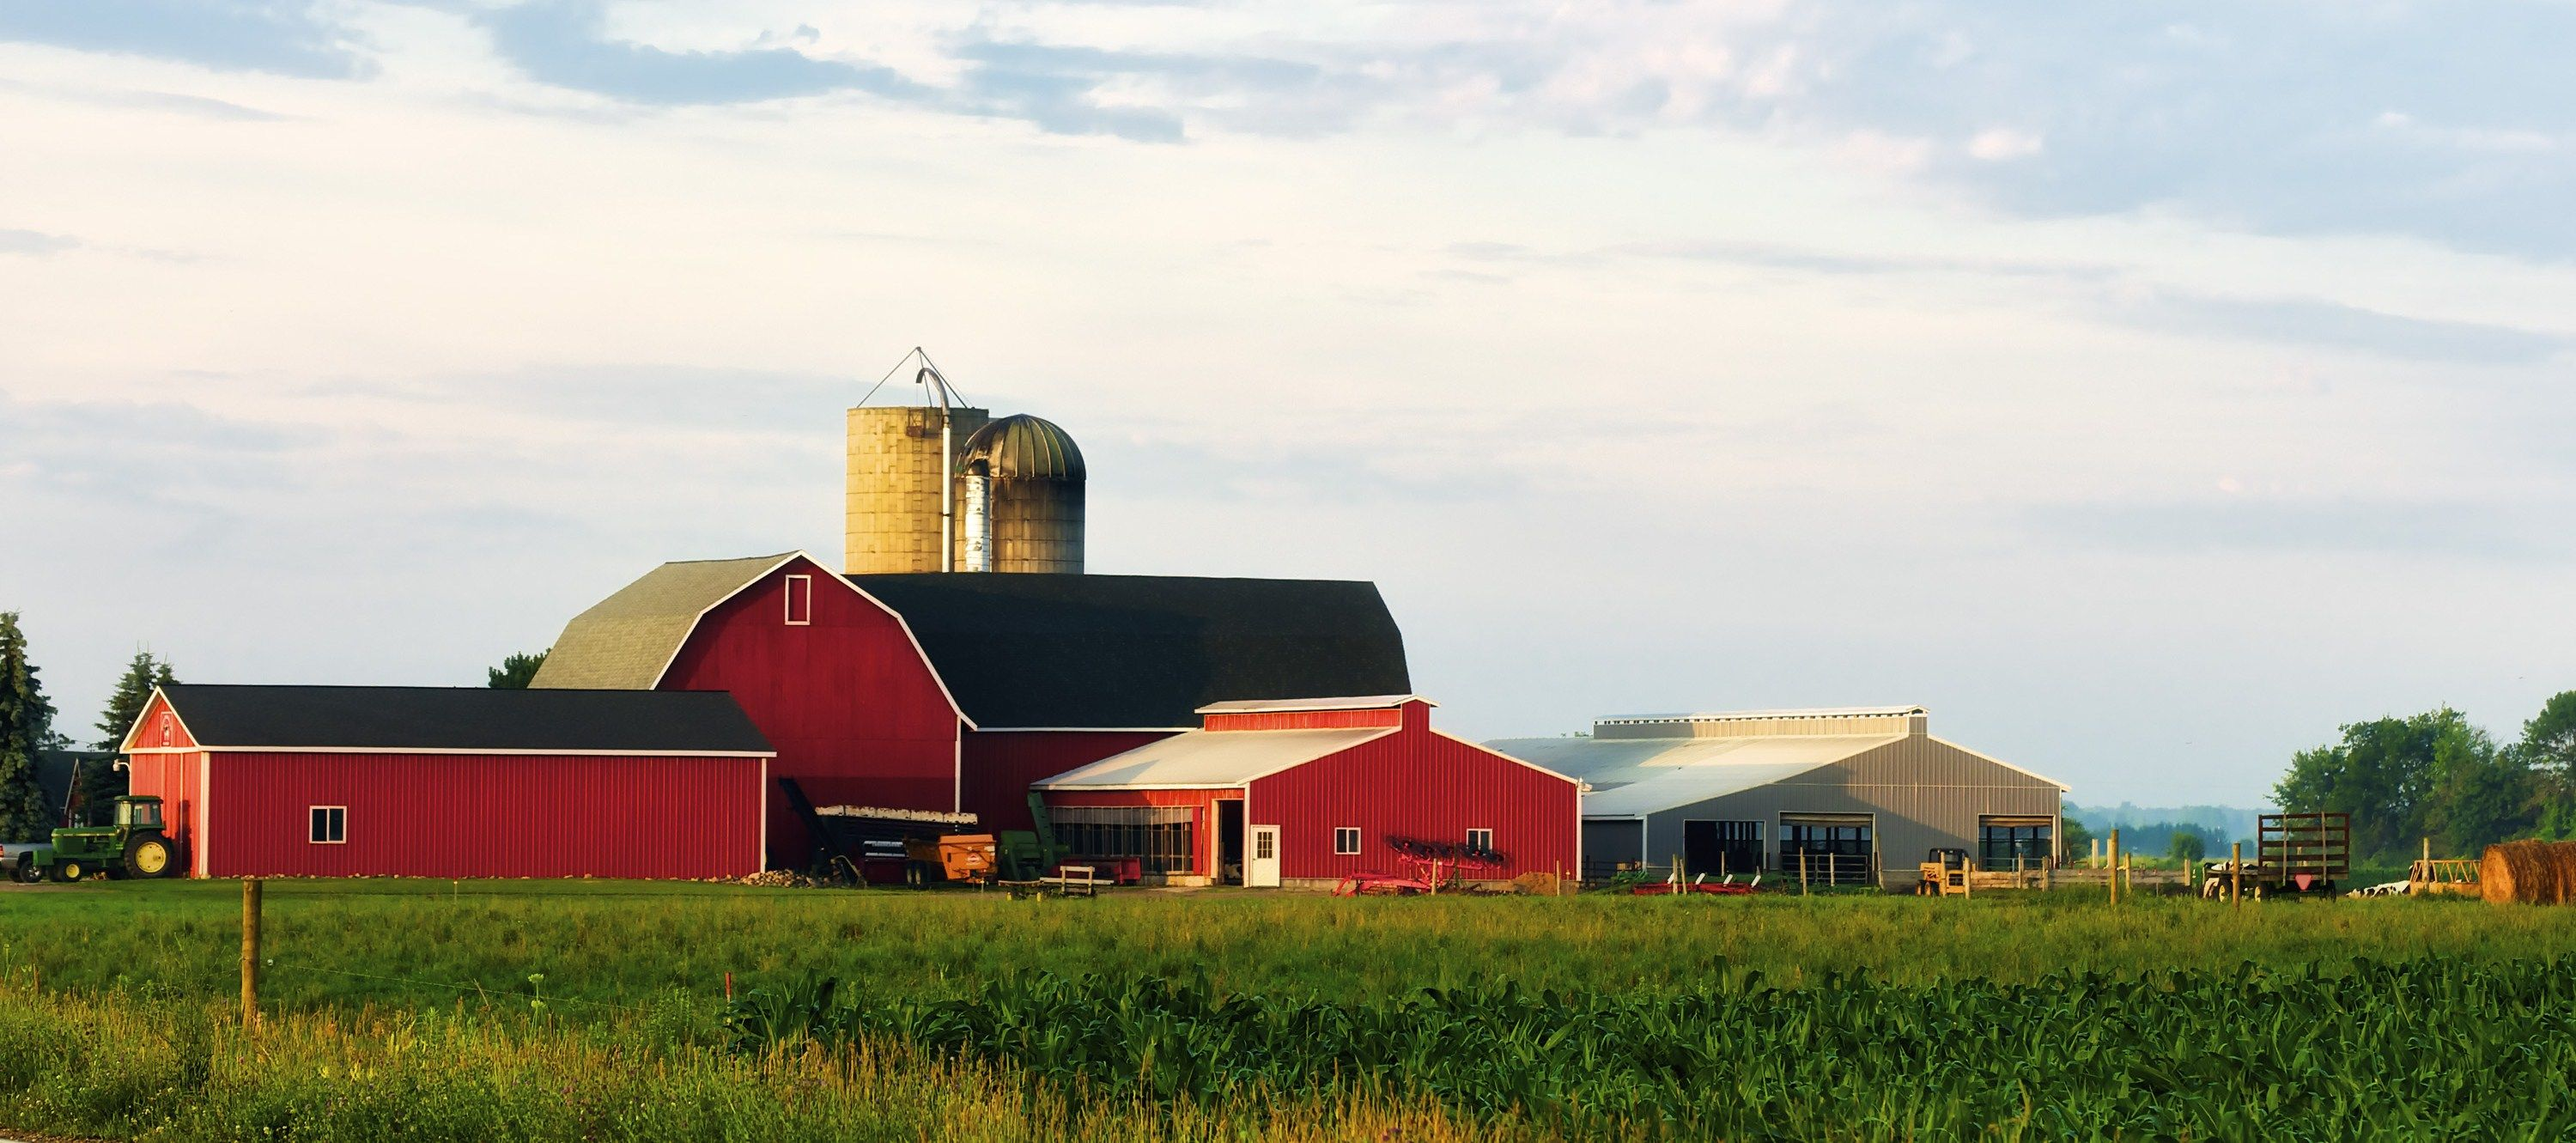 Michigan Farm Insurance Quotes Independent Insurance Agent In